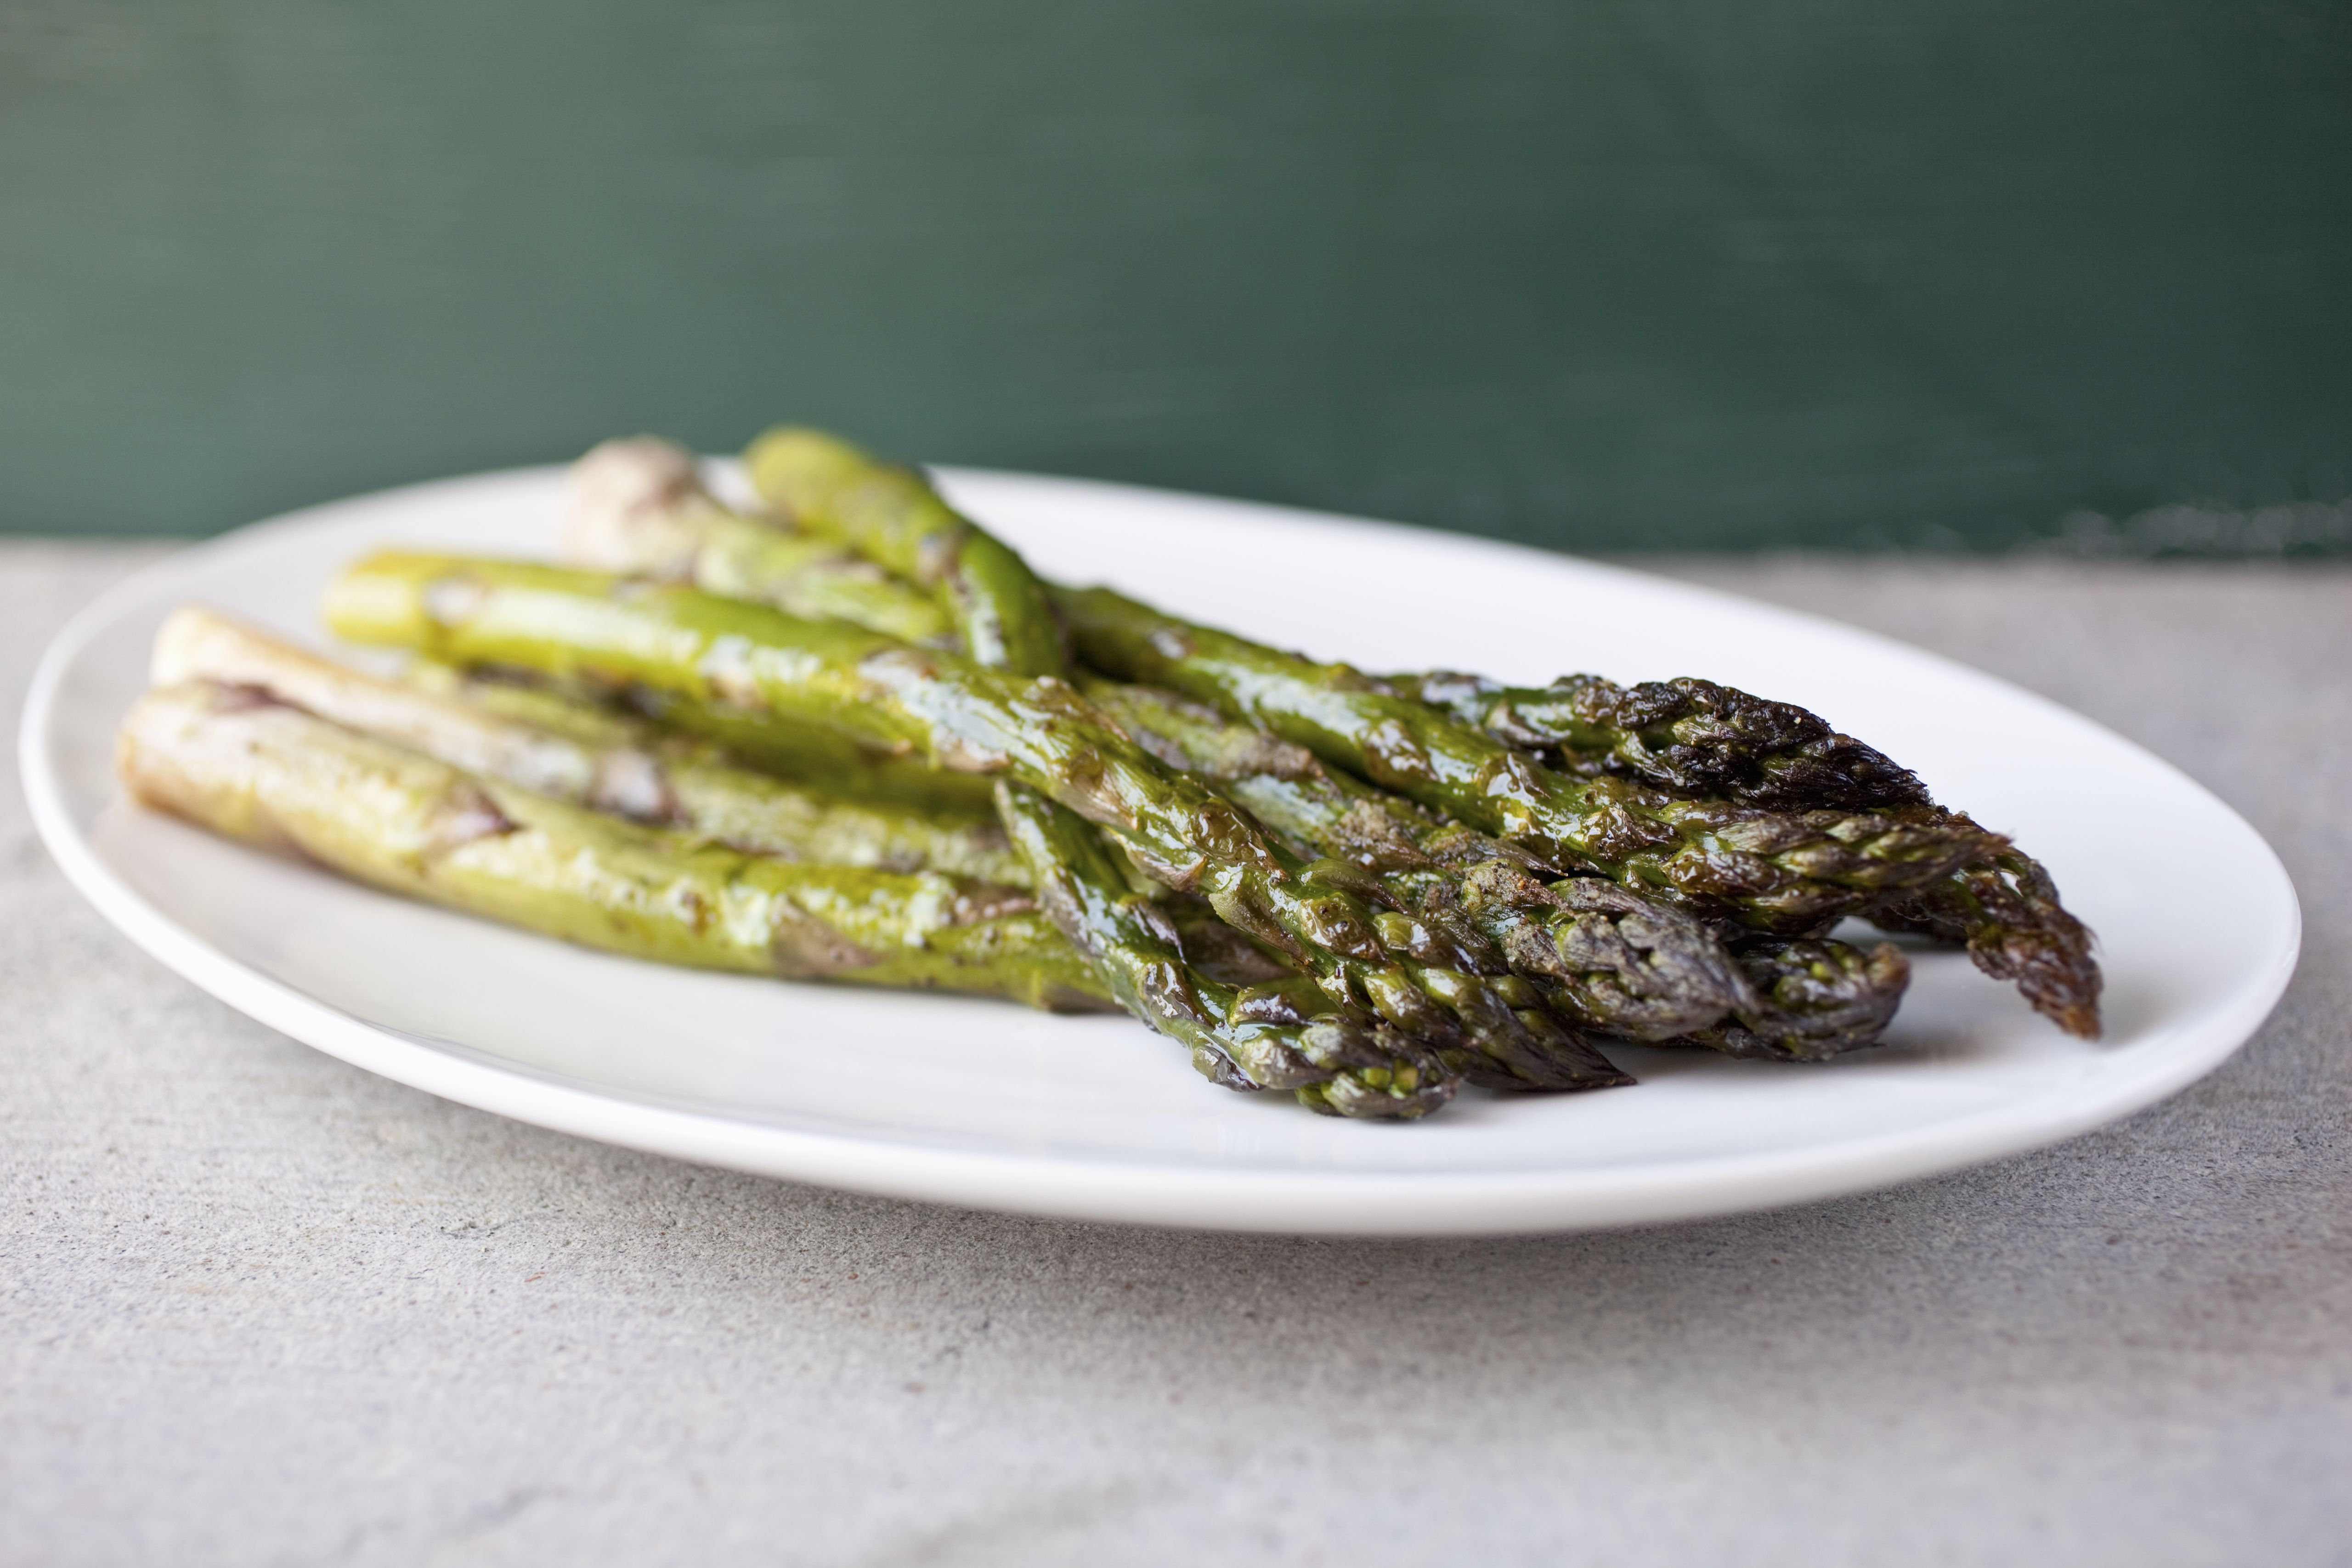 Roasted asparagus on white platter, close-up